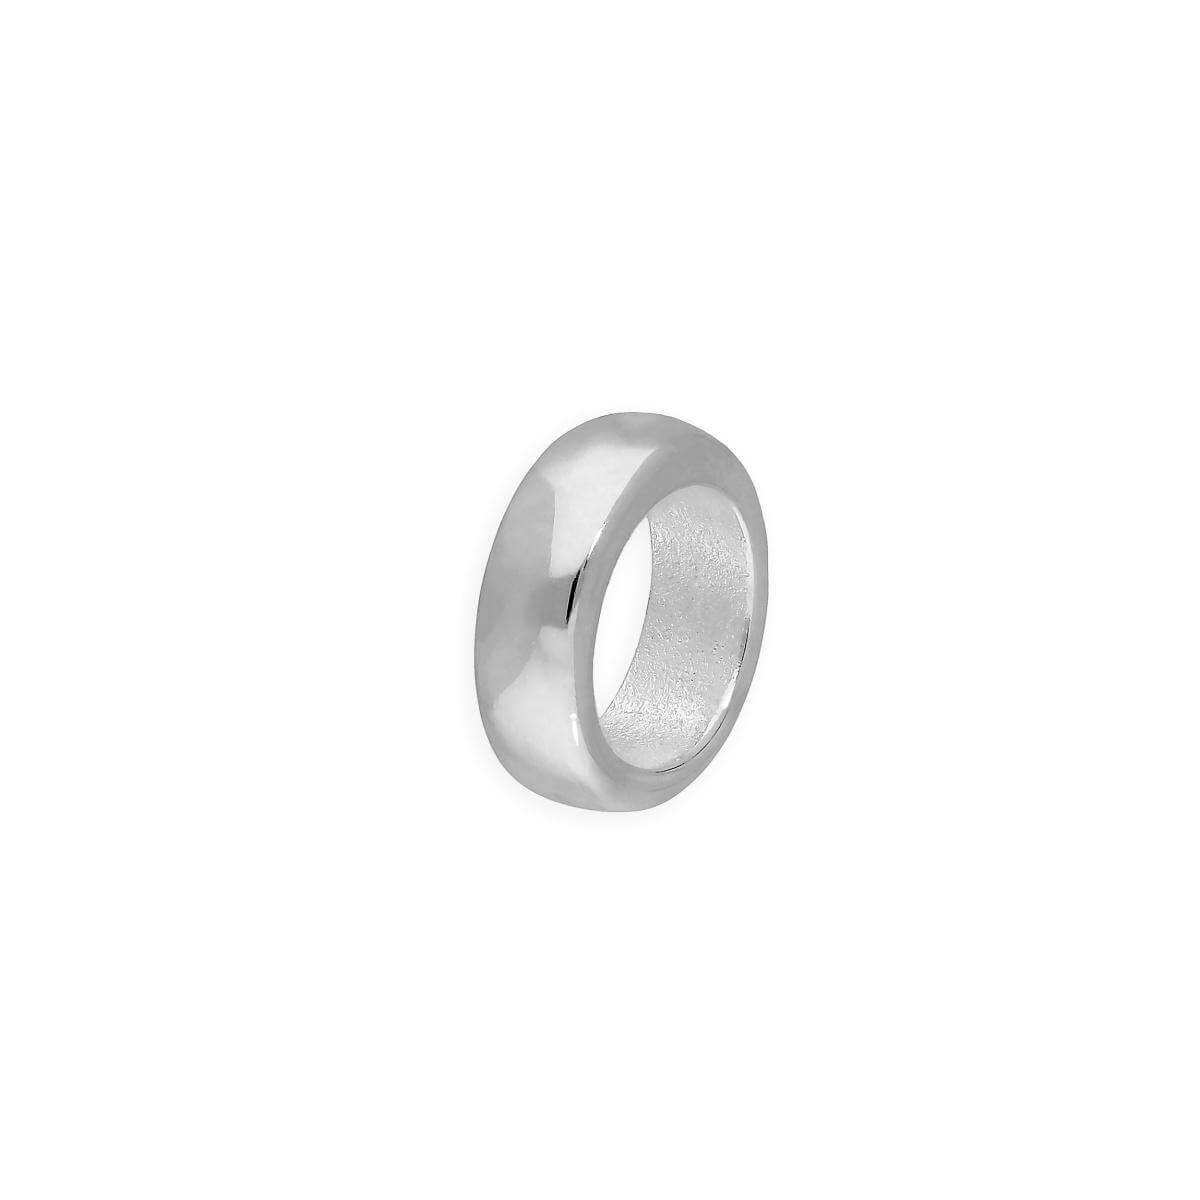 Sterling Silver 2mm Plain Polished Round Ring Bead